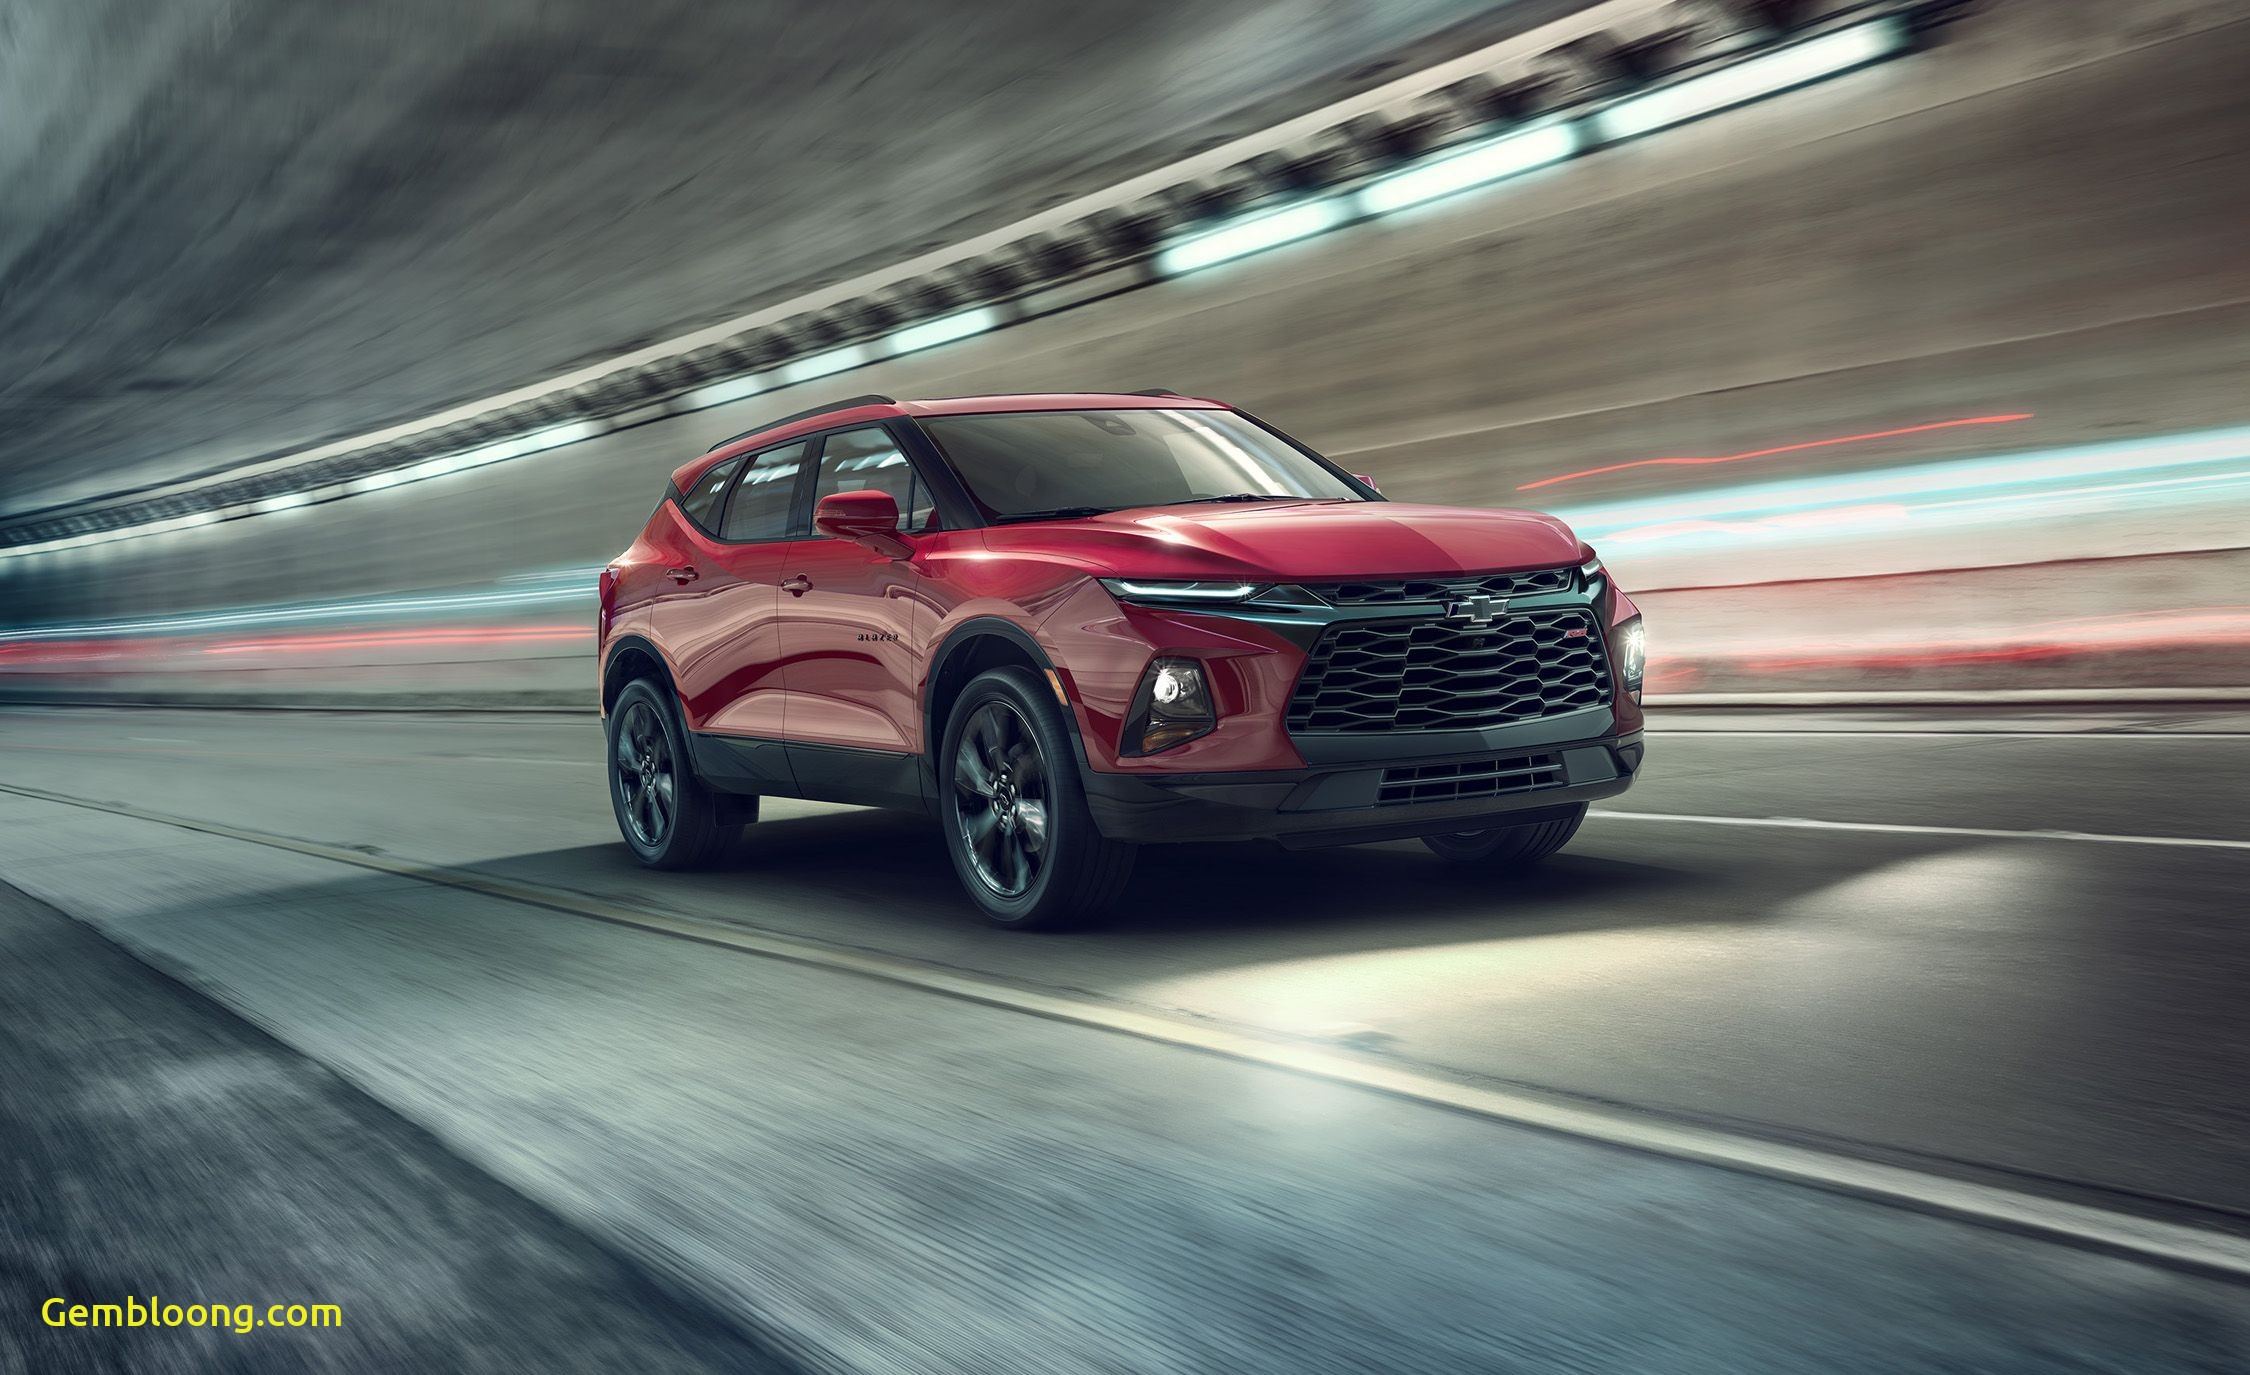 Used 4 Wheel Drive Cars for Sale Near Me Inspirational 2019 Chevrolet Blazer Revealed – Info and Pricing On the New